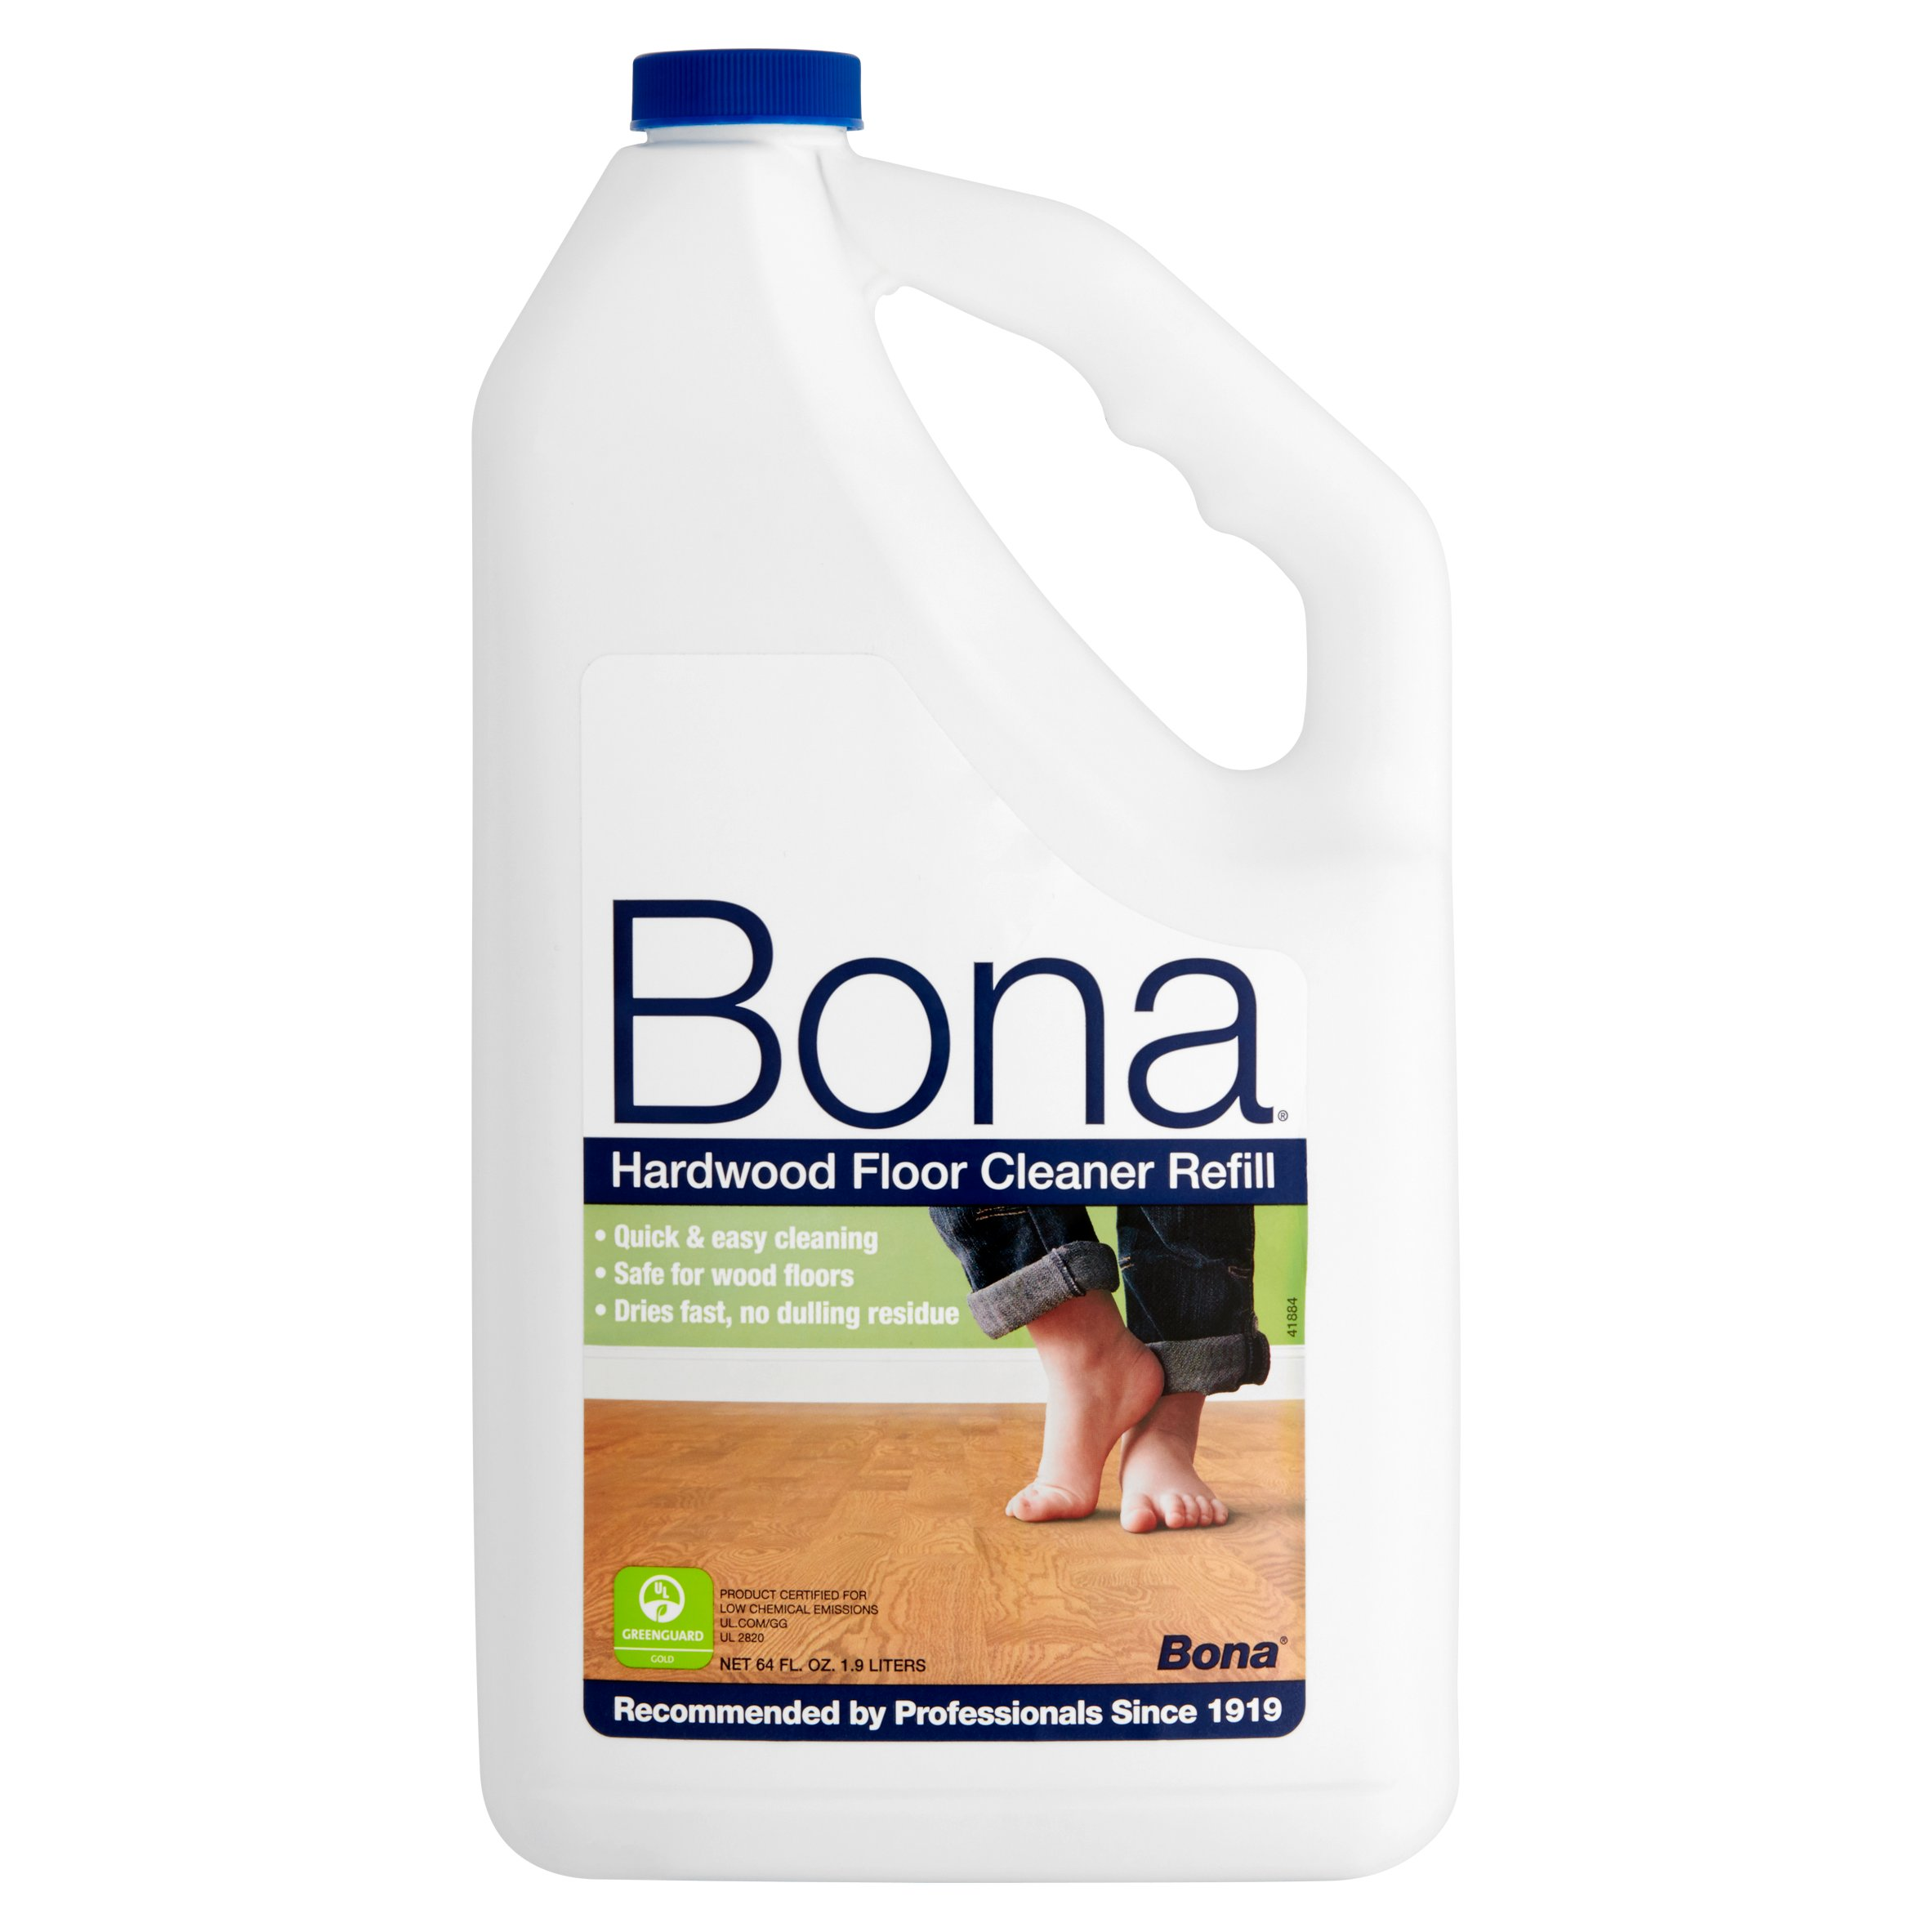 bona swedish formula hardwood floor cleaner, 64 oz - walmart